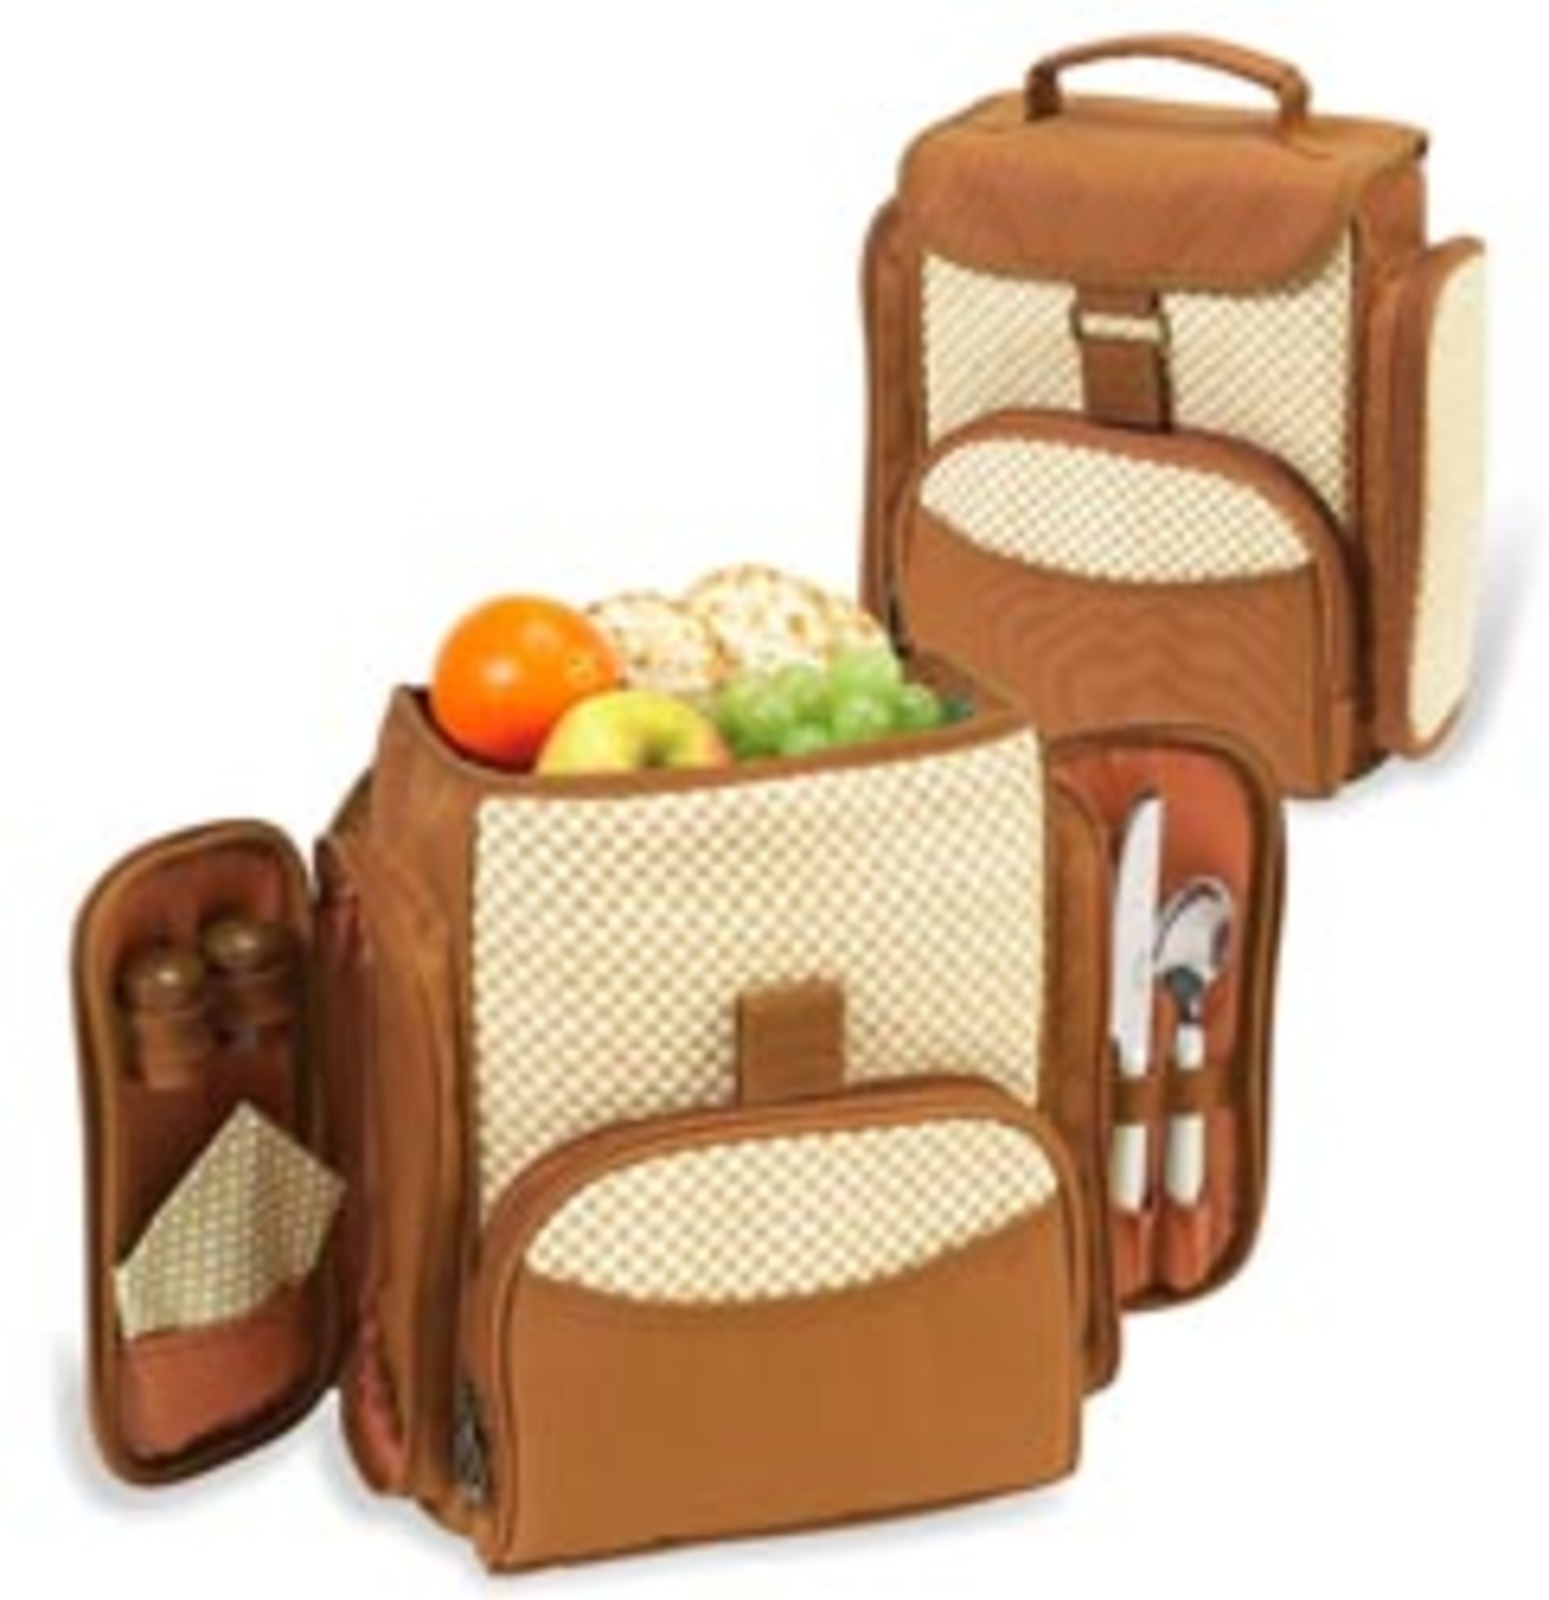 lunchables ten lunch boxes and accessories cool hunting. Black Bedroom Furniture Sets. Home Design Ideas